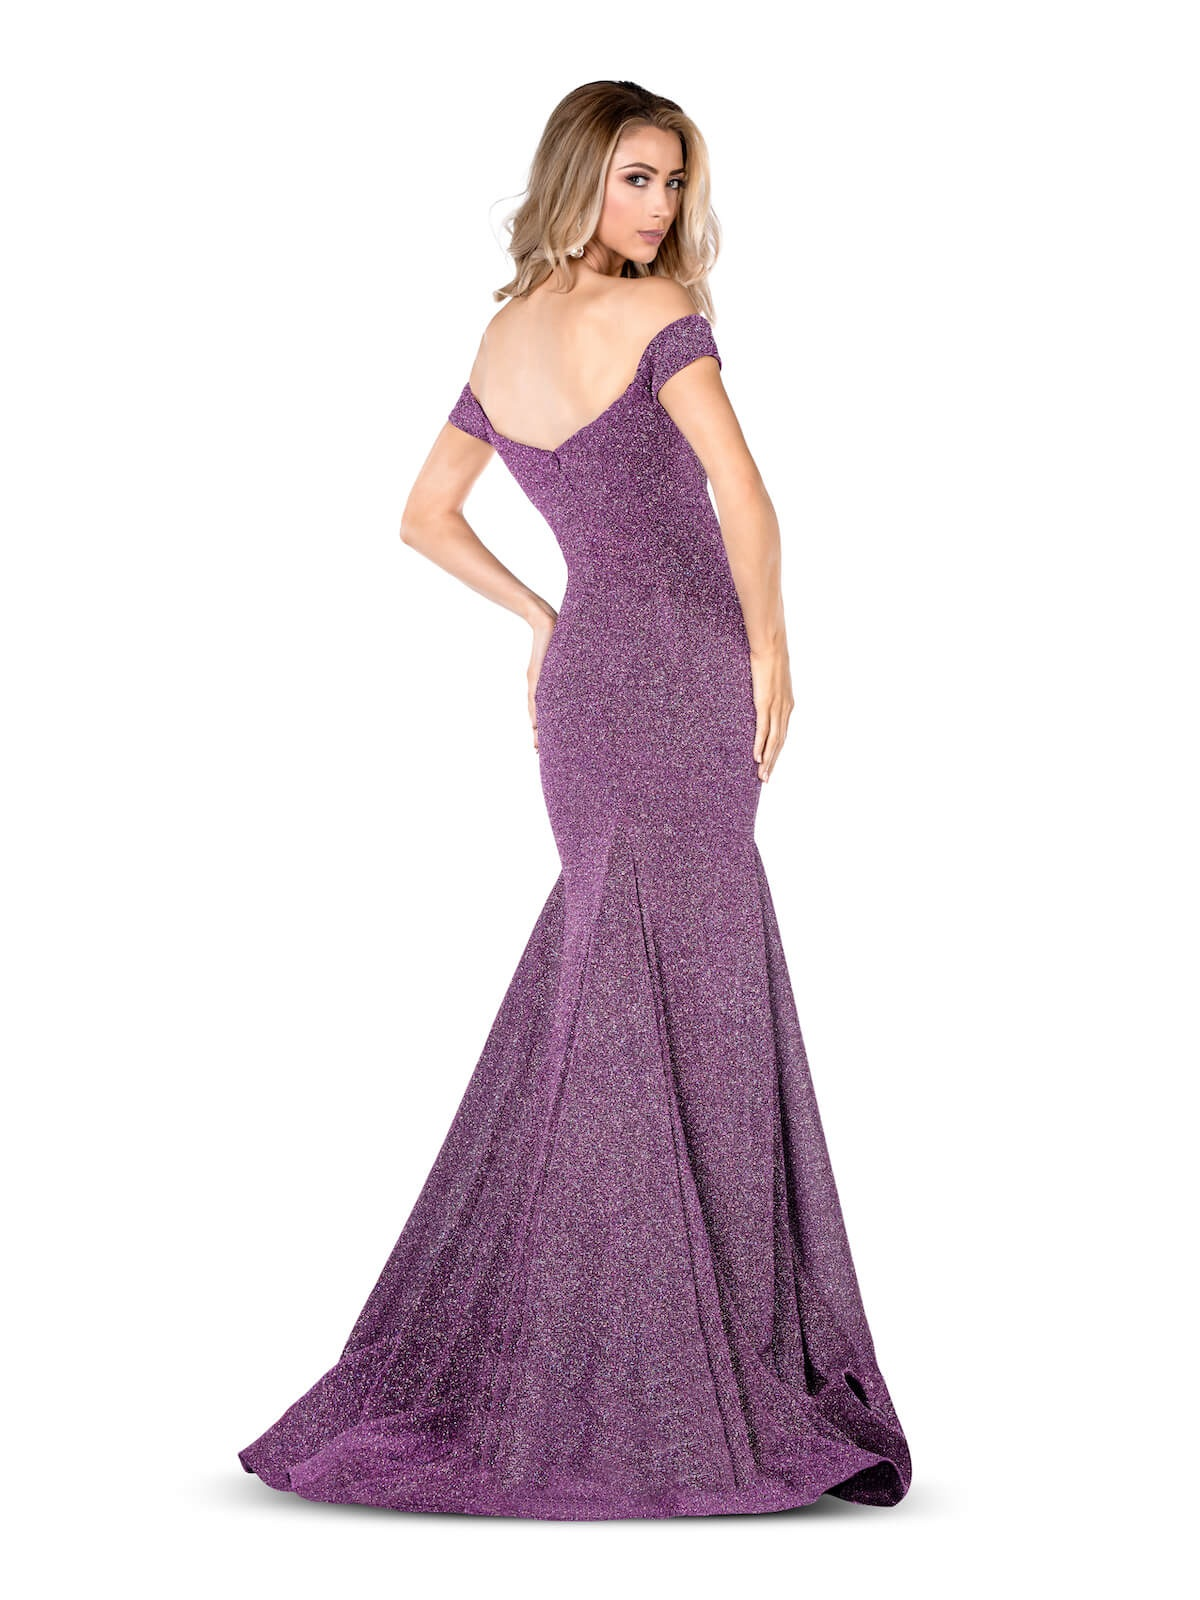 Vienna Purple Size 8 Tall Height Mermaid Dress on Queenly